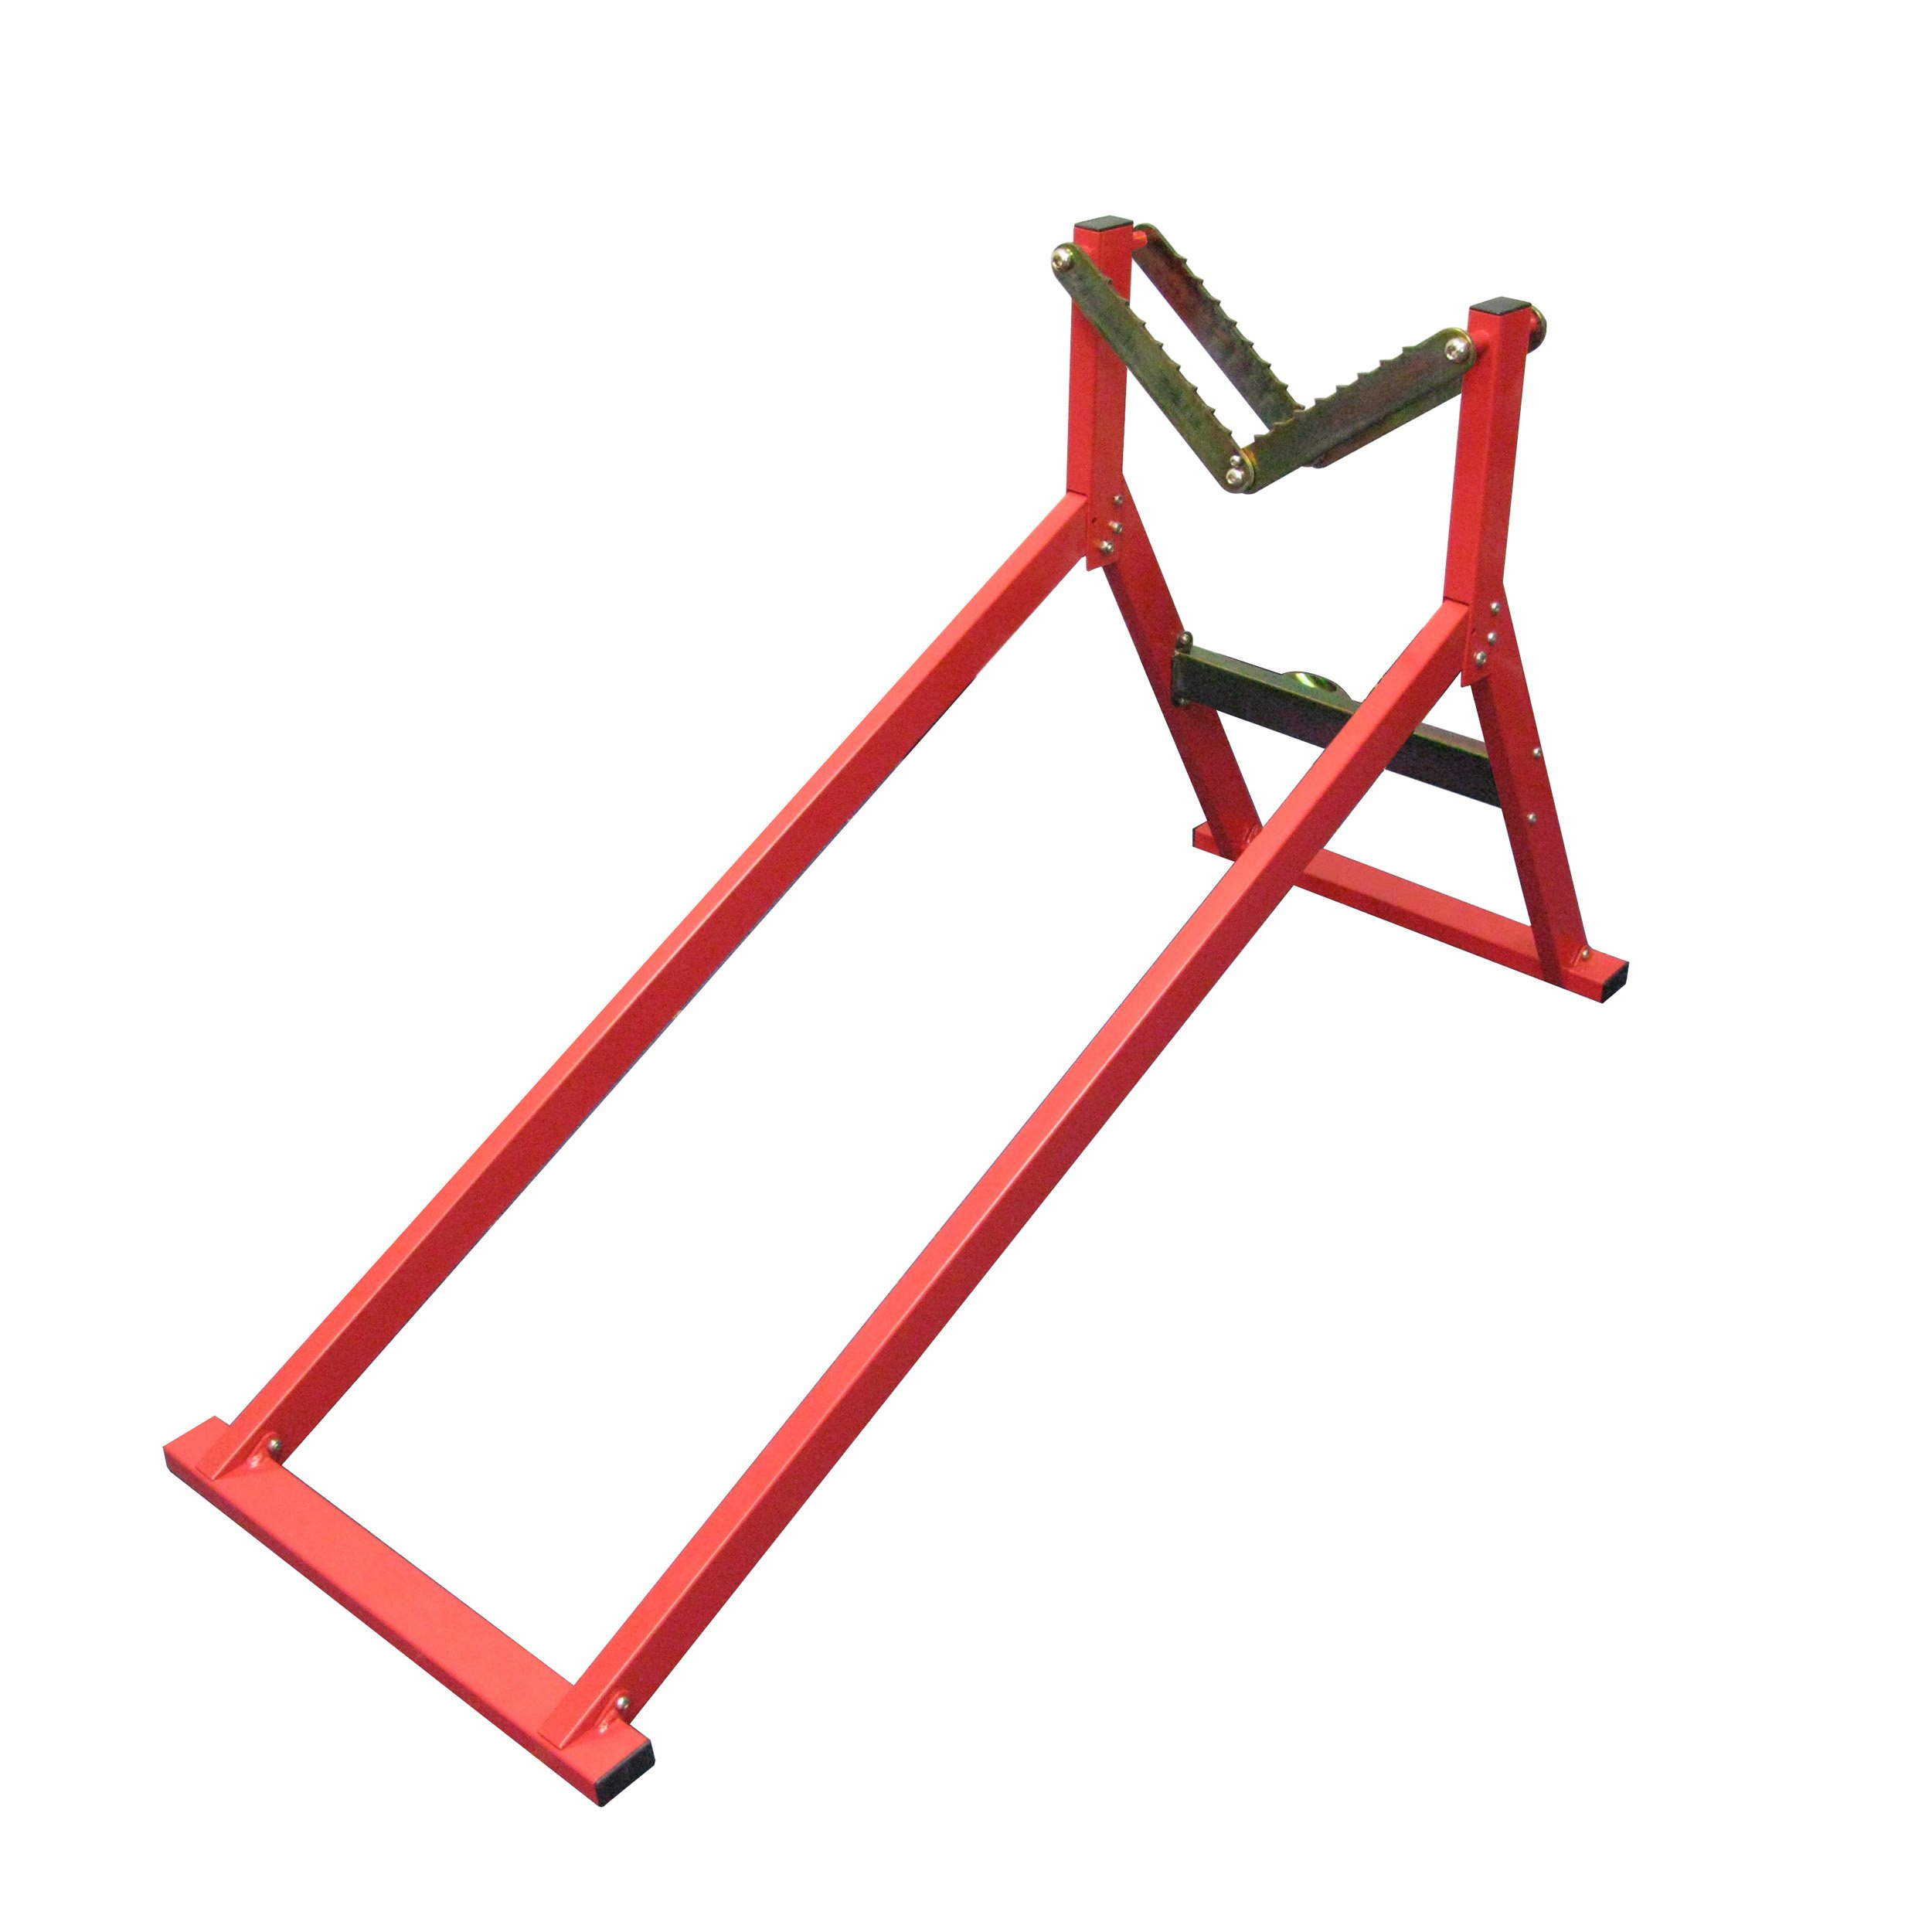 Forest Master 80-934 Ultimate Sawhorse by Olympia Tools